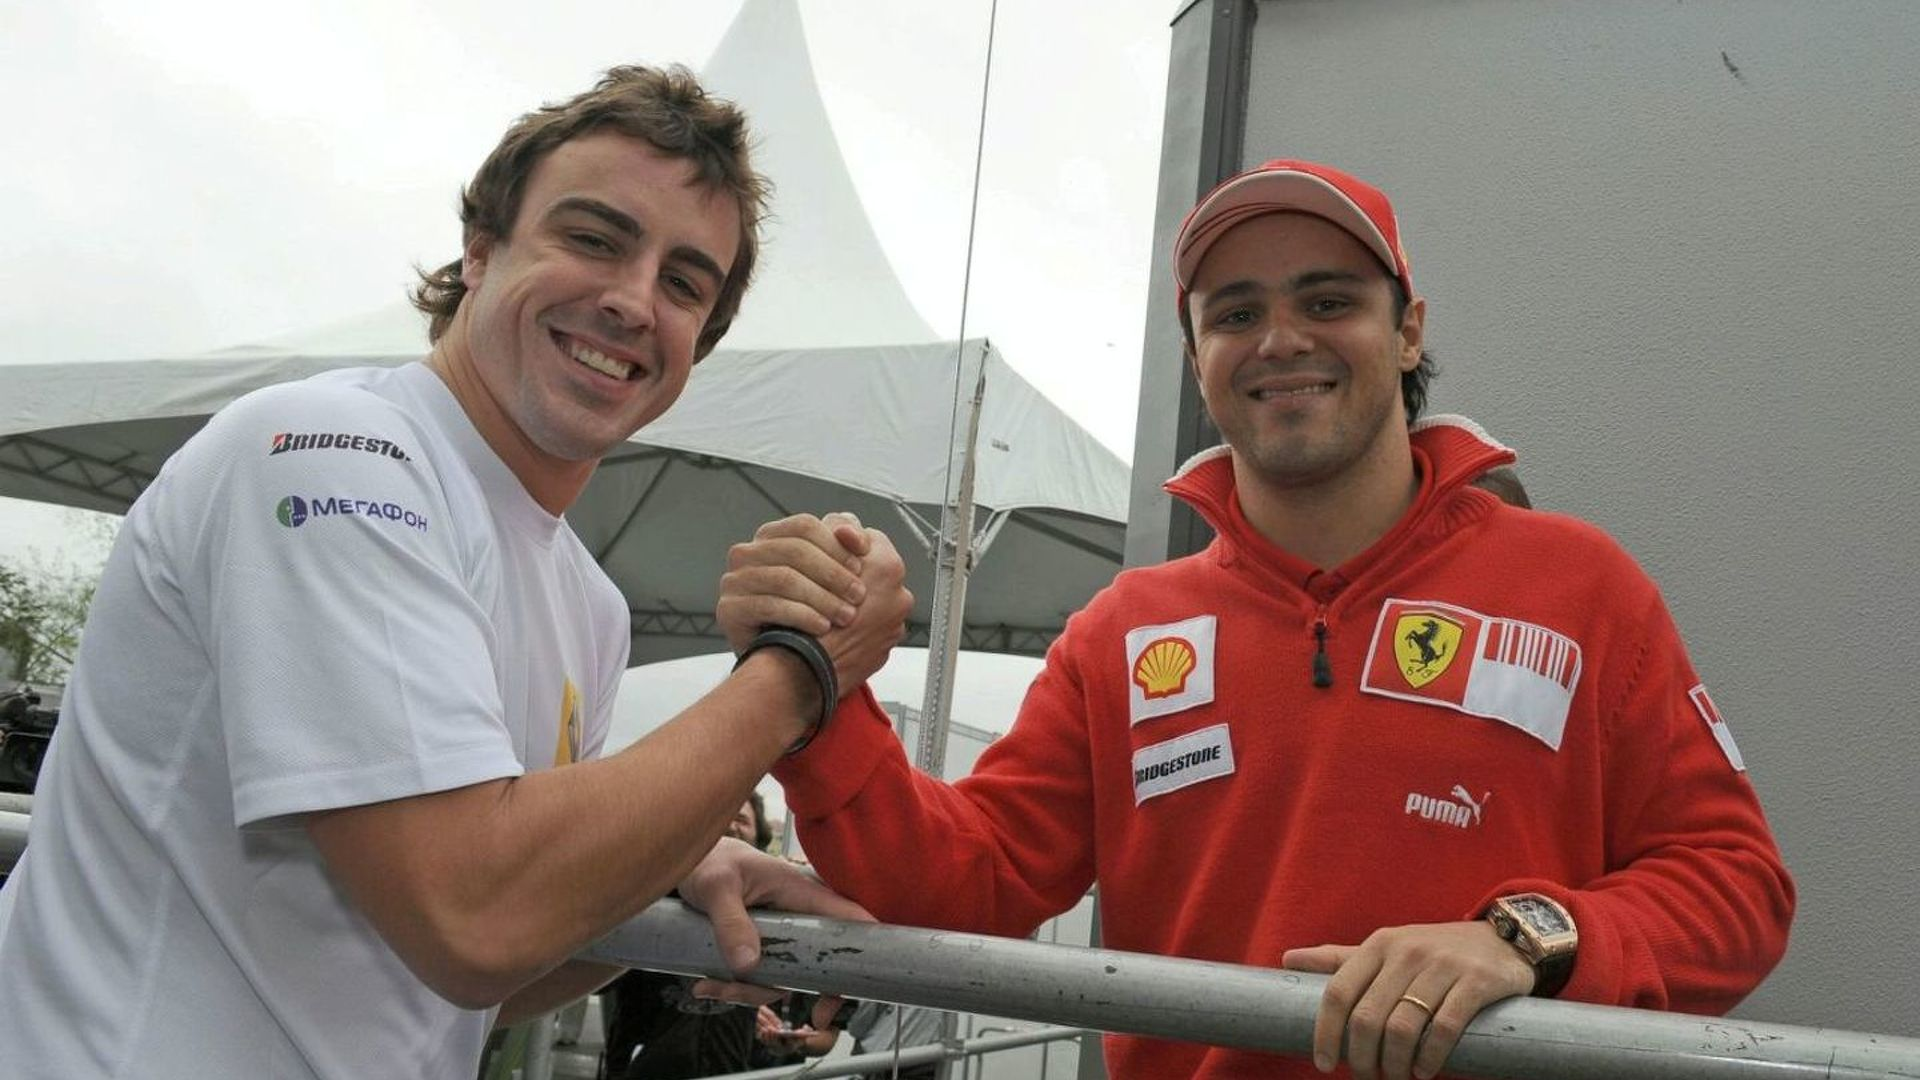 No sparks as Alonso meets with Massa